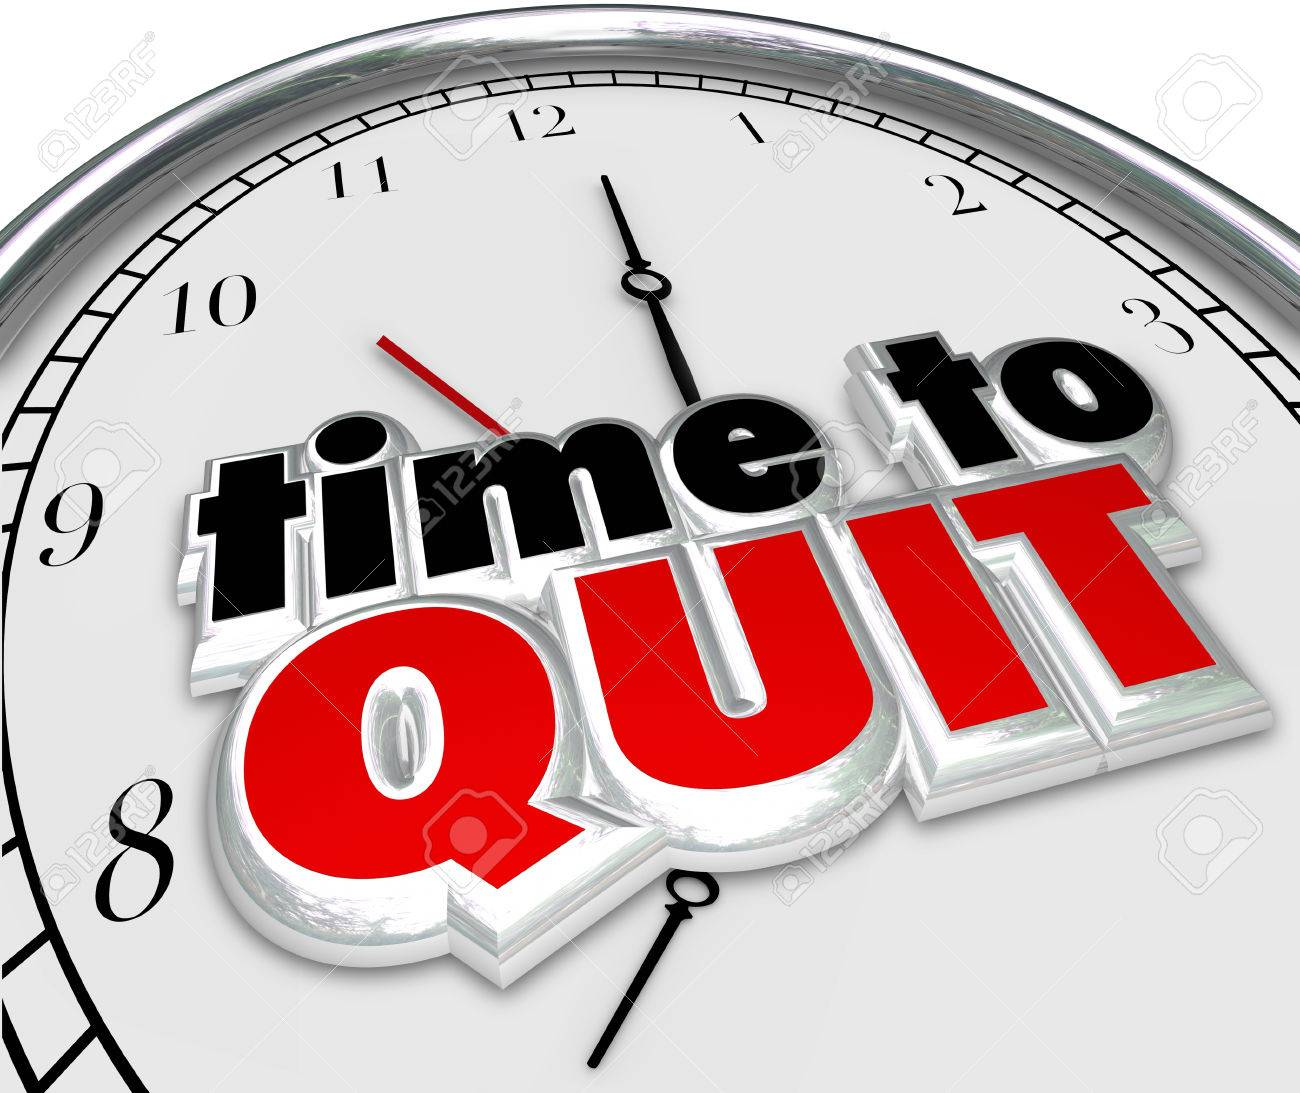 time to quit clock for end or stop of career job or work as stock photo time to quit clock for end or stop of career job or work as a finish of a project or endeavor